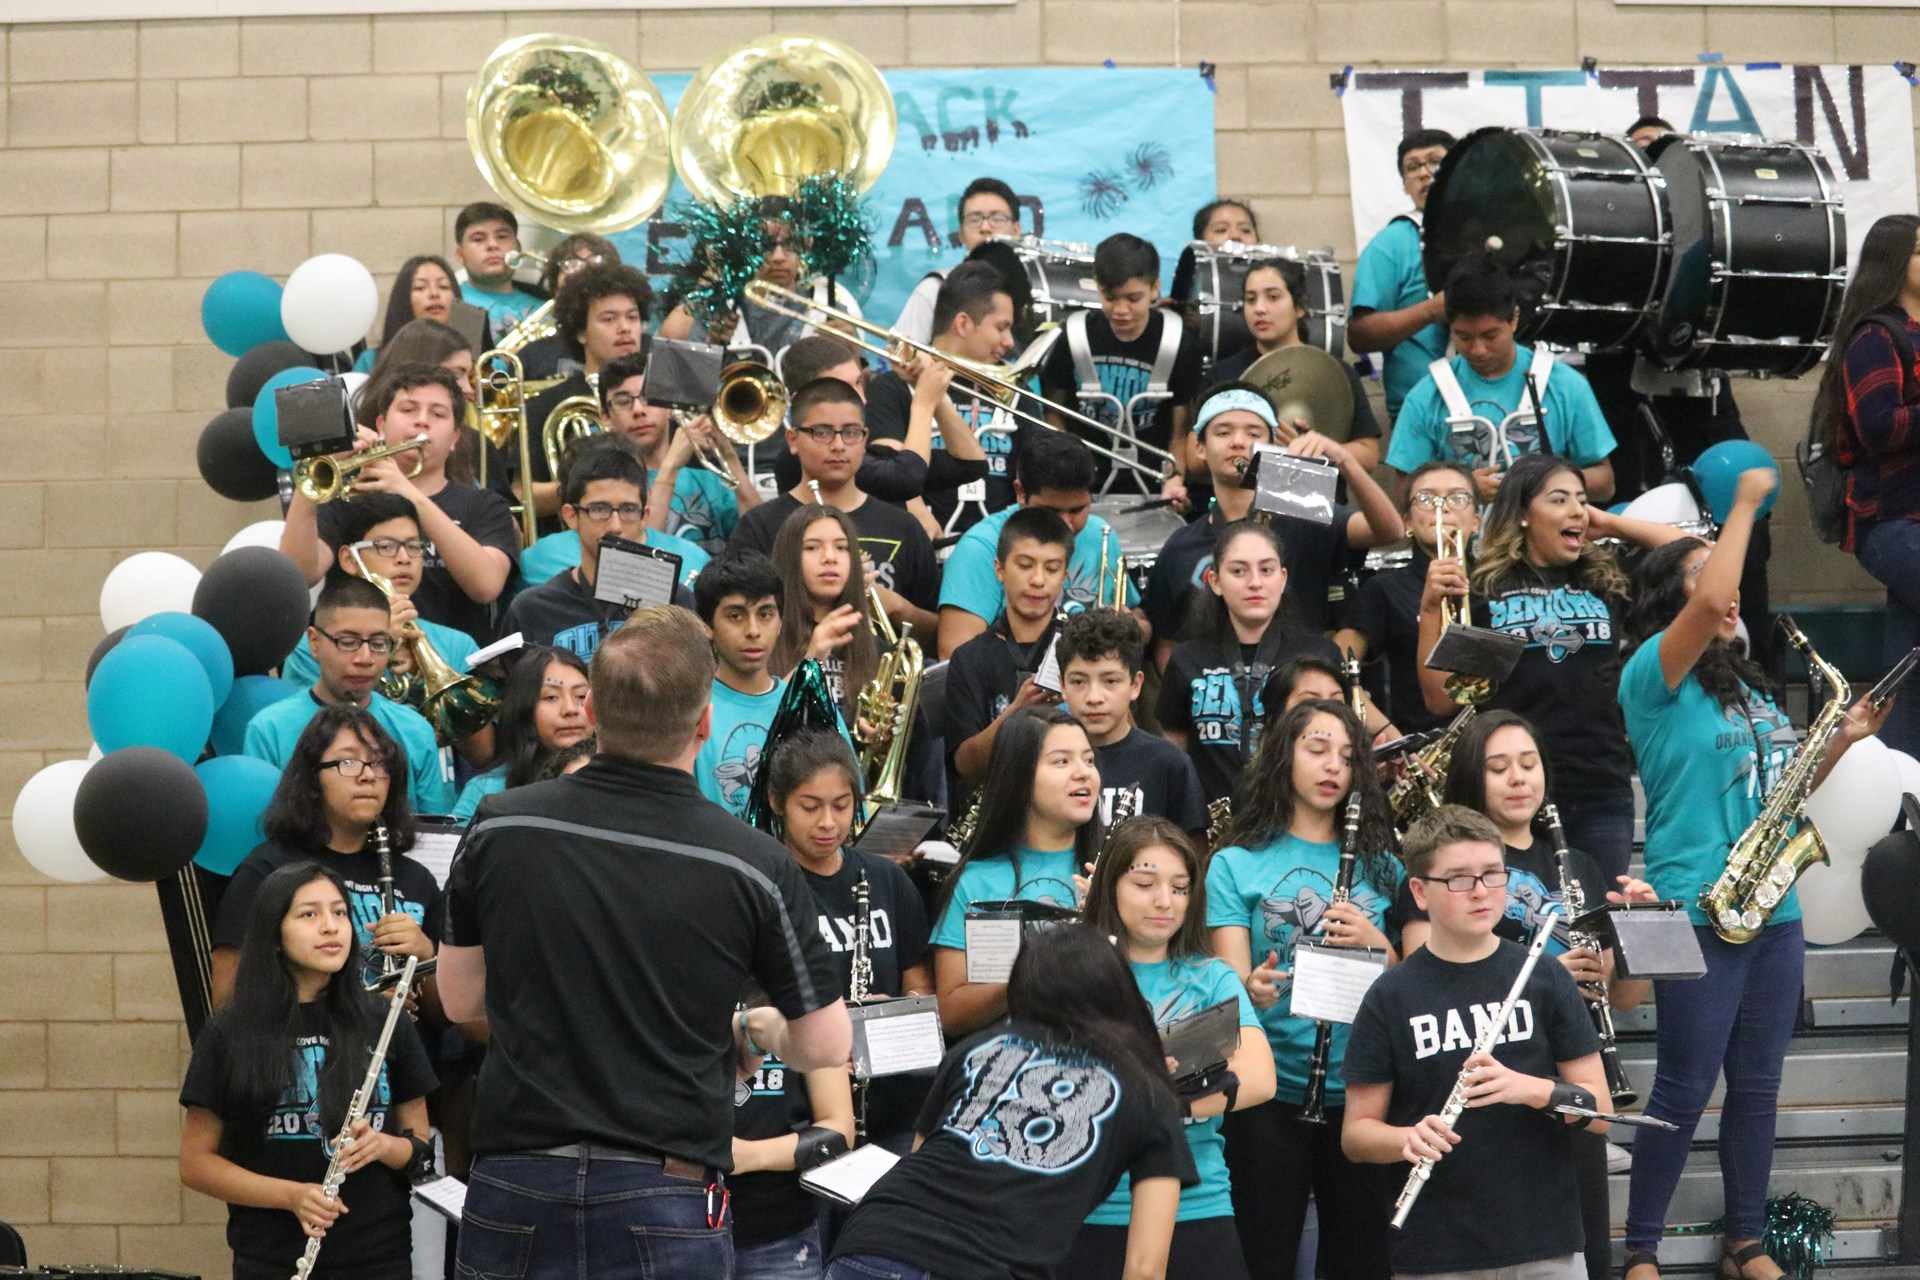 OCHS Band at a Rally